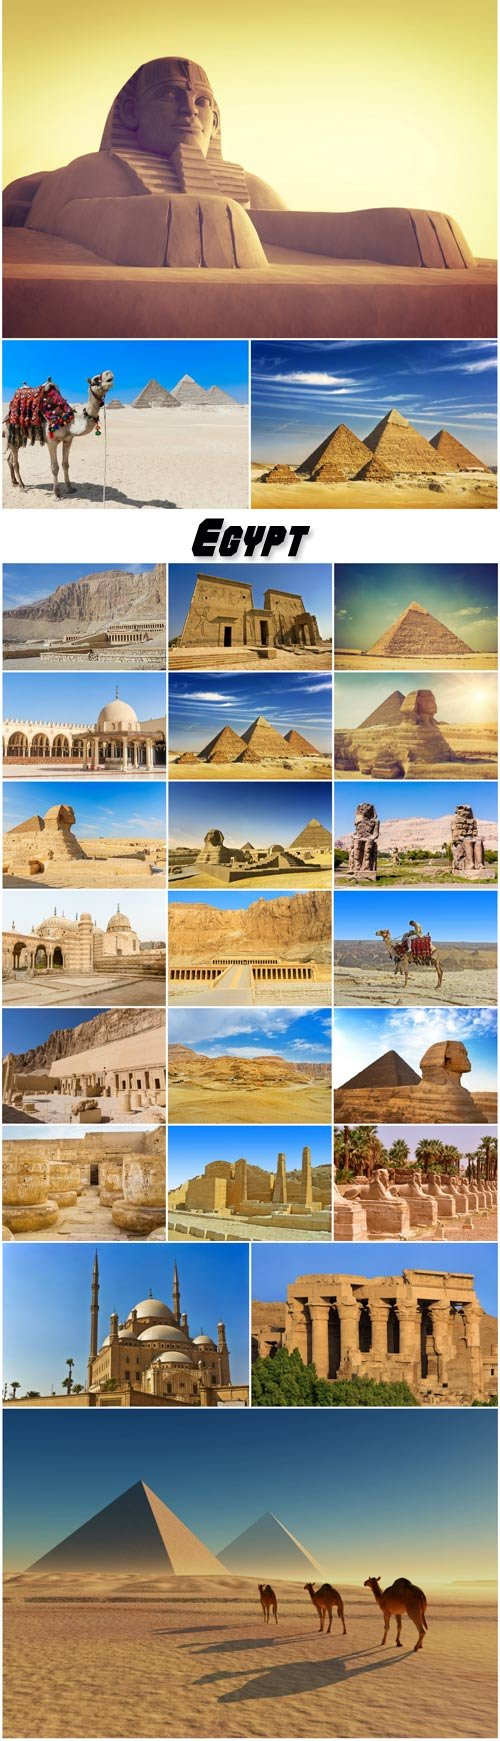 Egypt, sphinx and pyramid